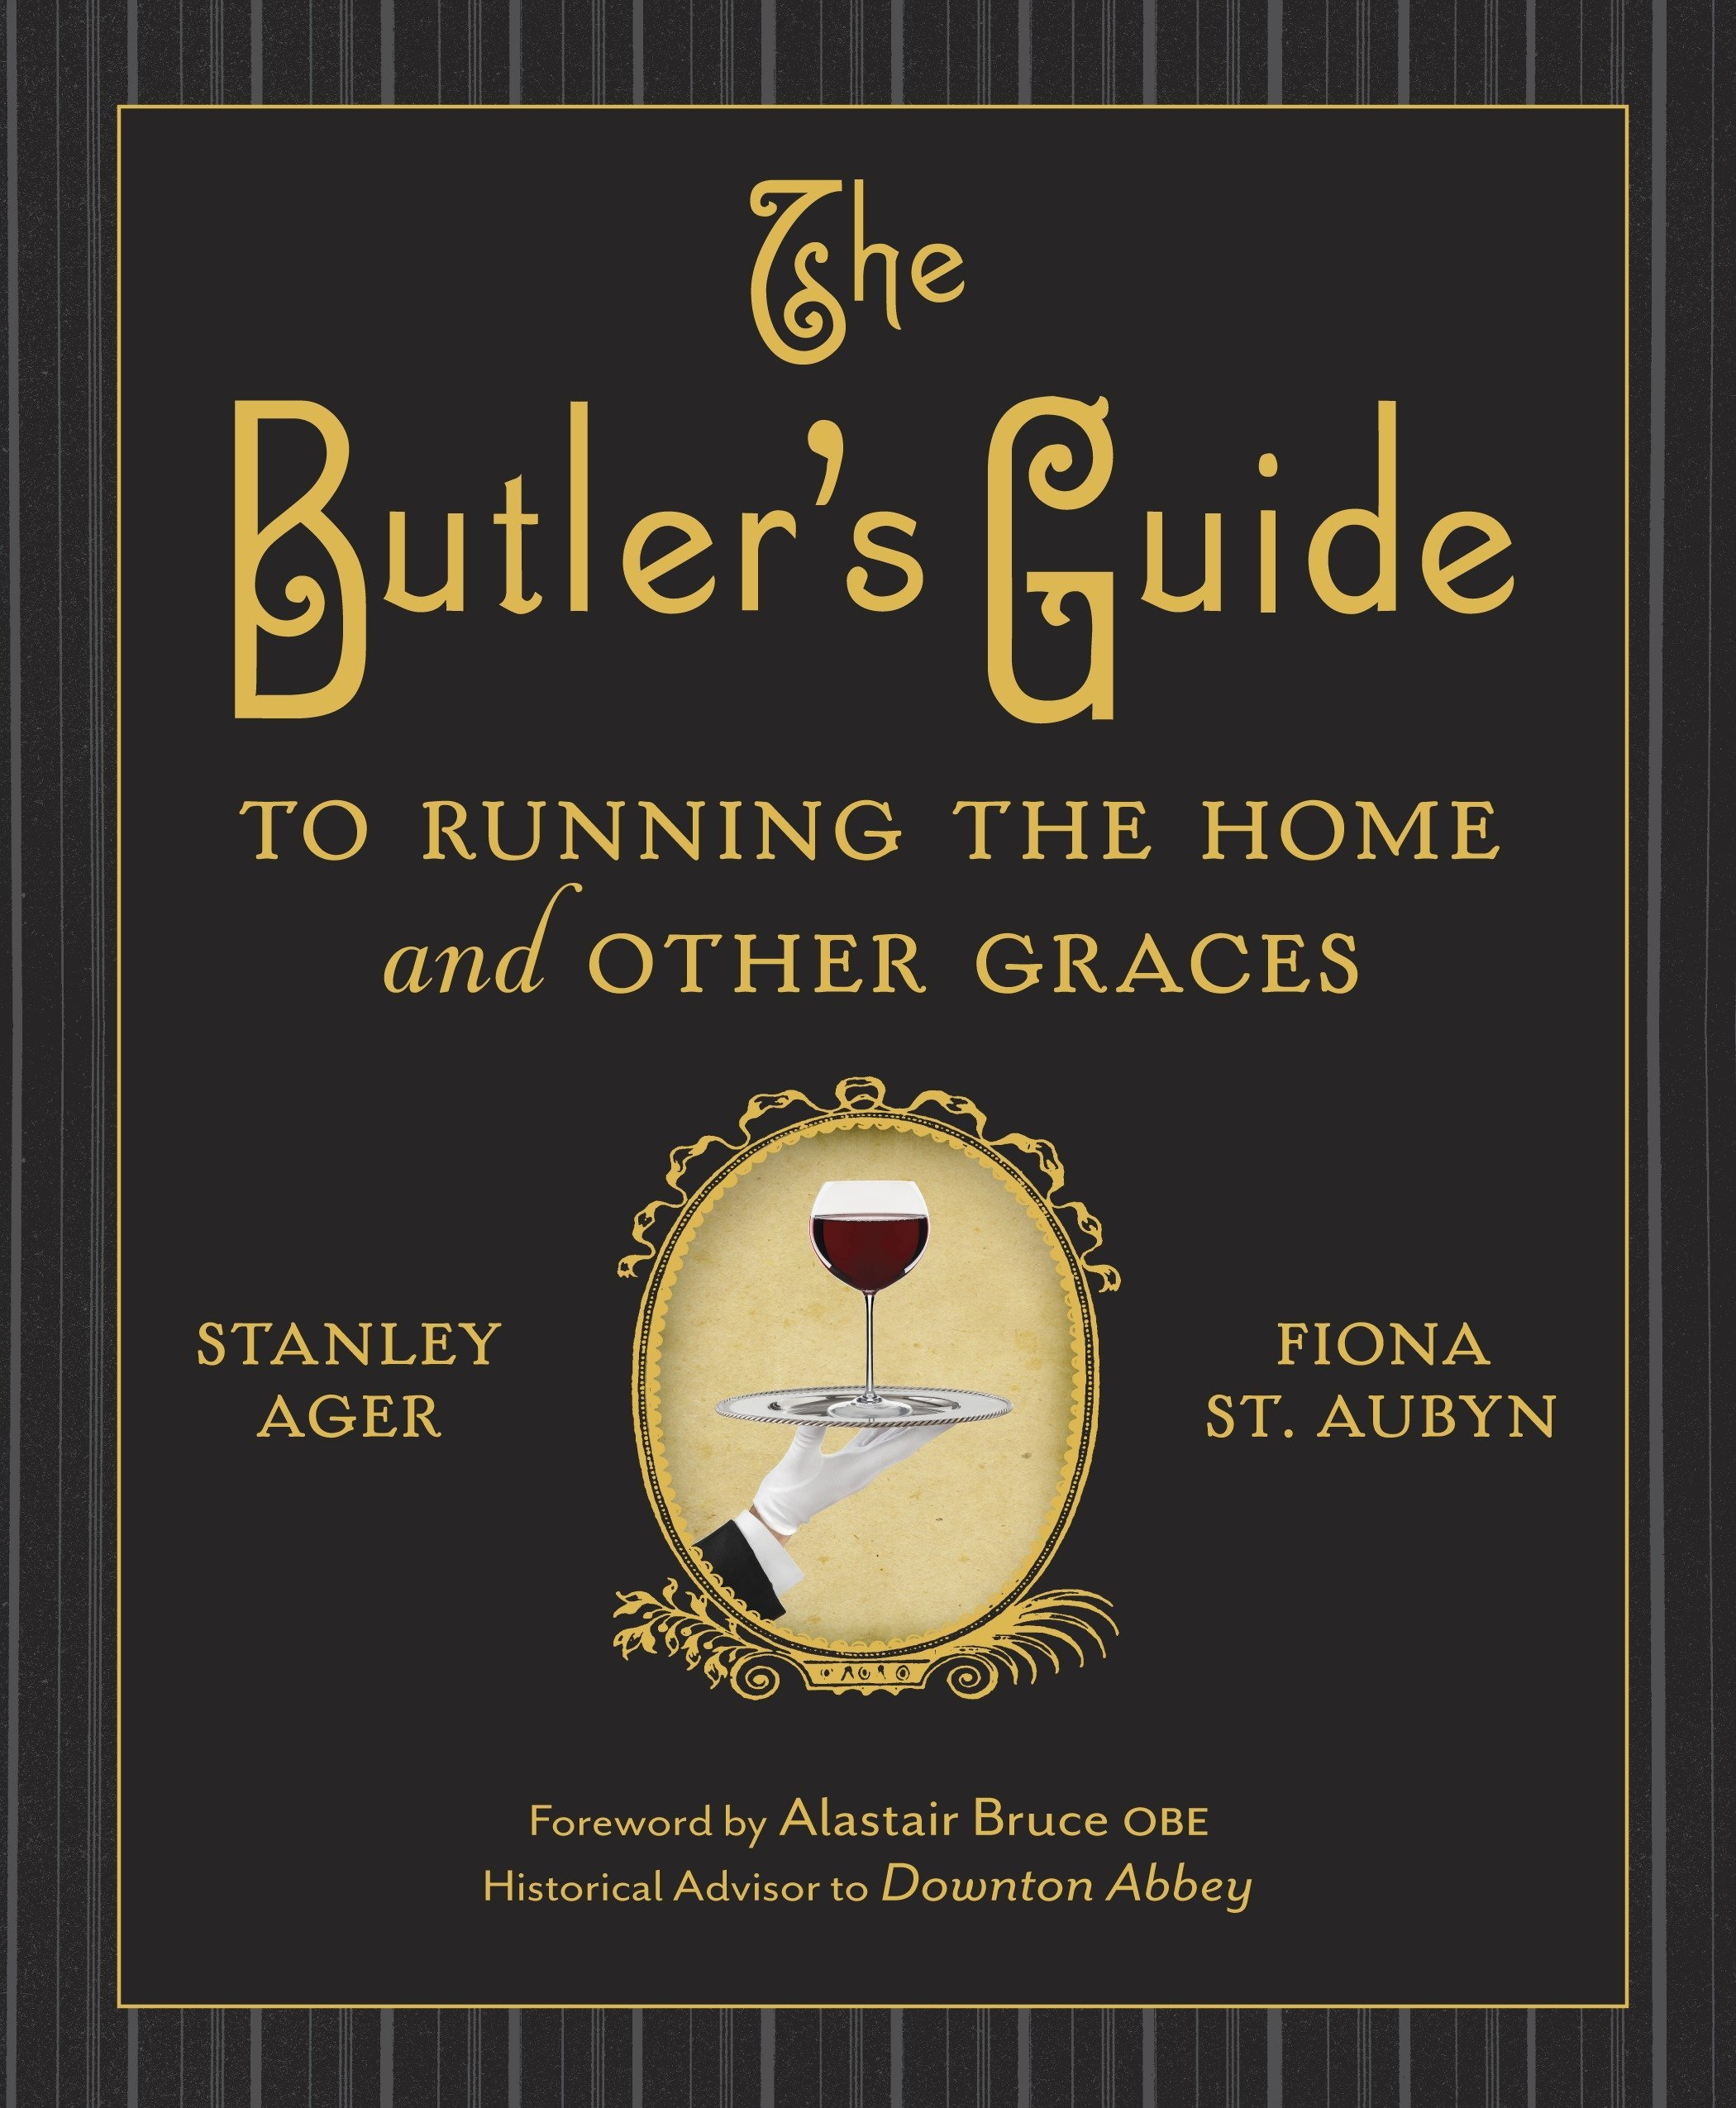 The Butler's Guide to Running the Home and Other Graces: Stanley Ager,  Fiona St. Aubyn: 9780385344708: Amazon.com: Books